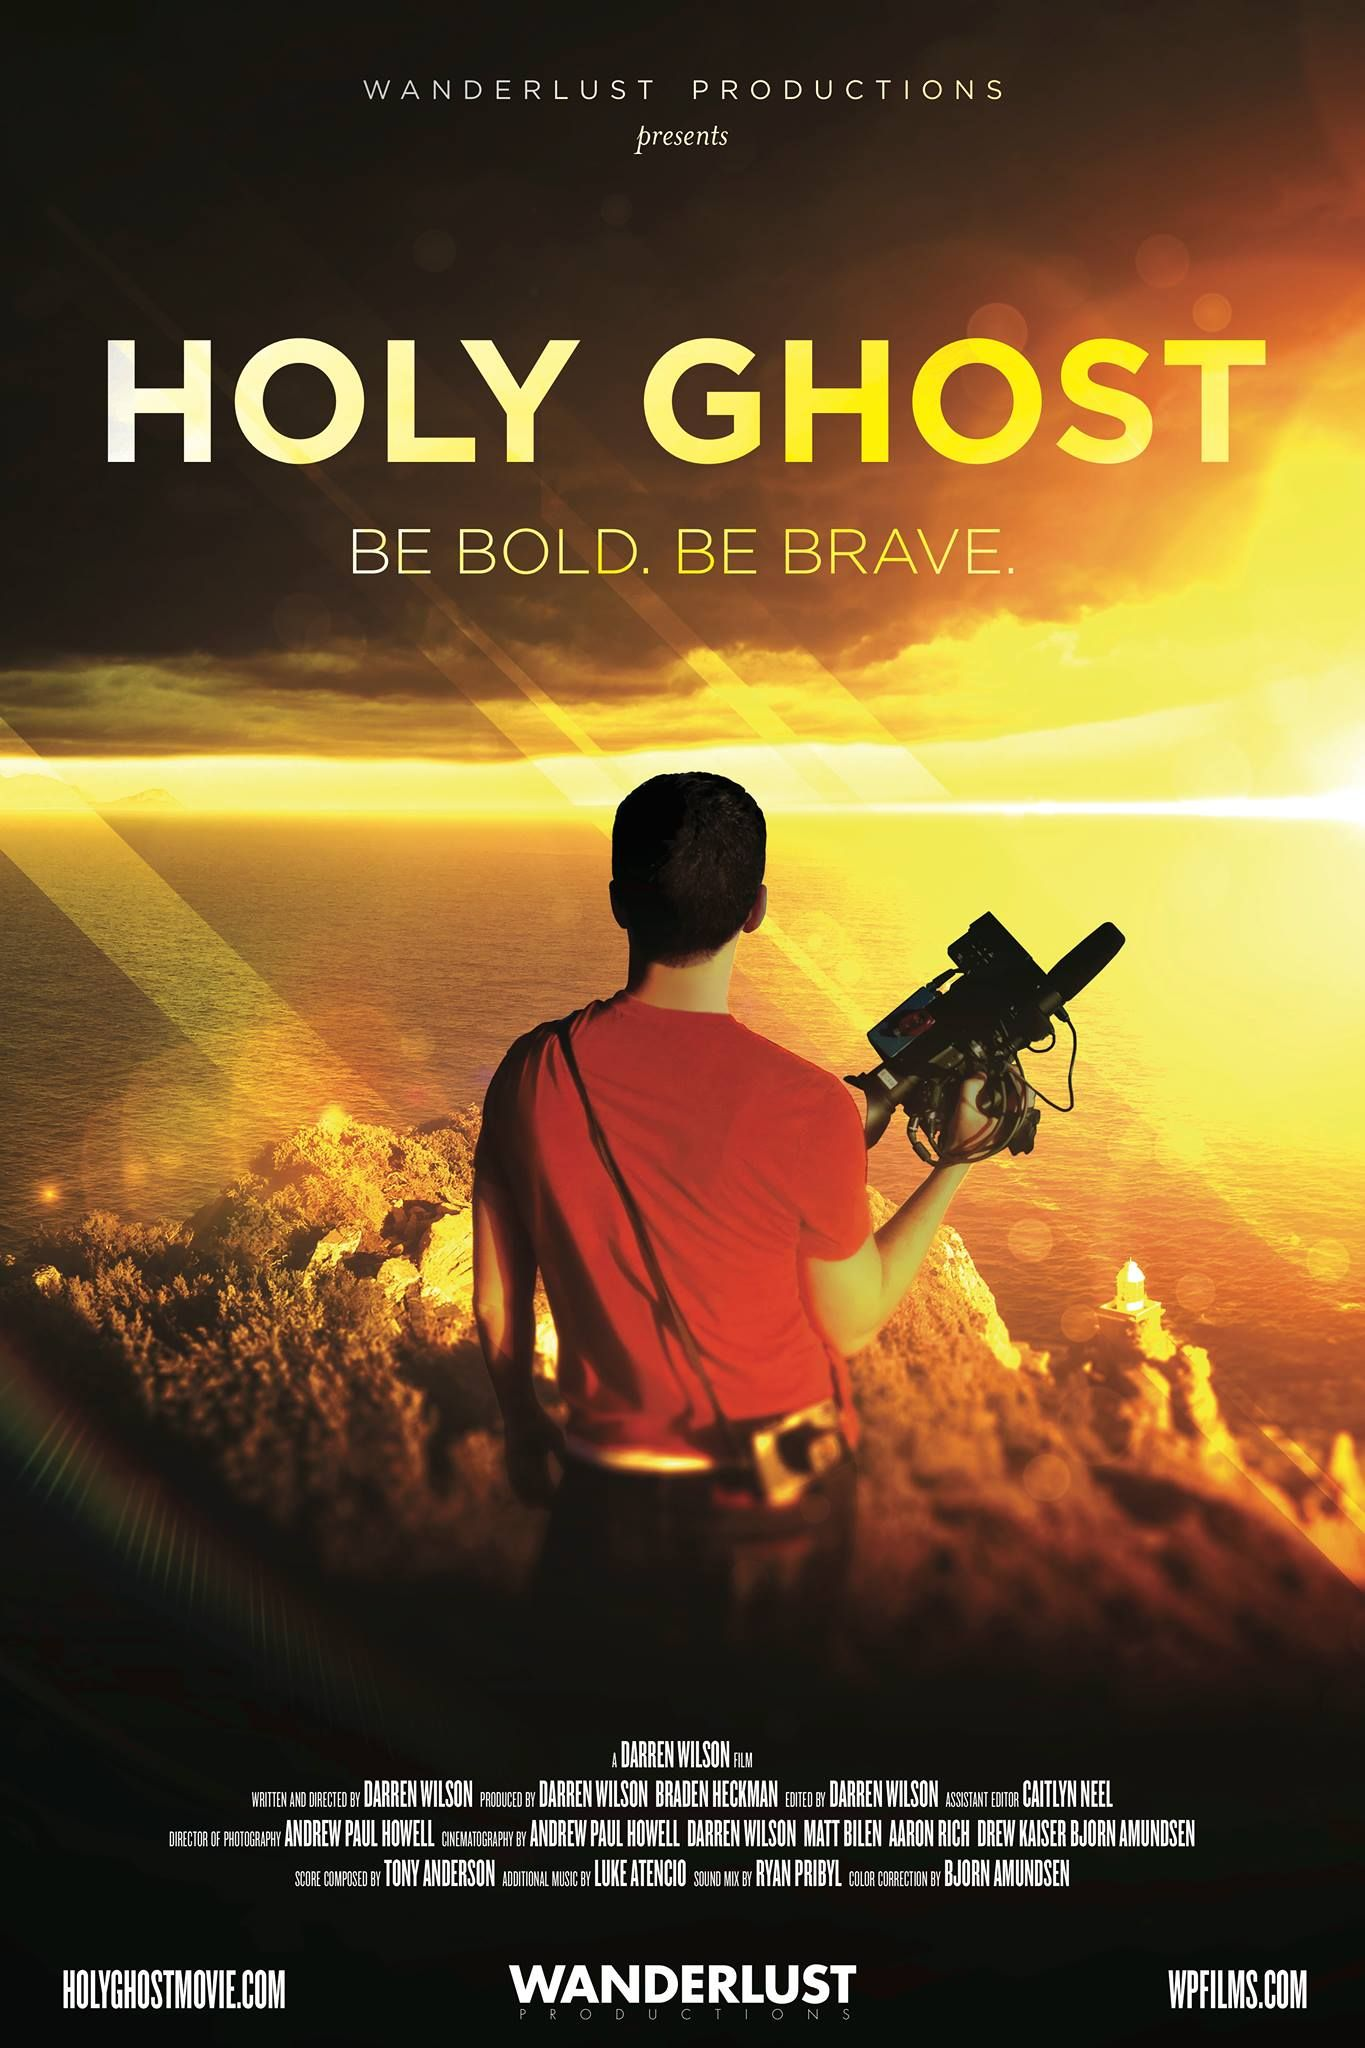 Holy ghost 2014 documentary ghost movies christian